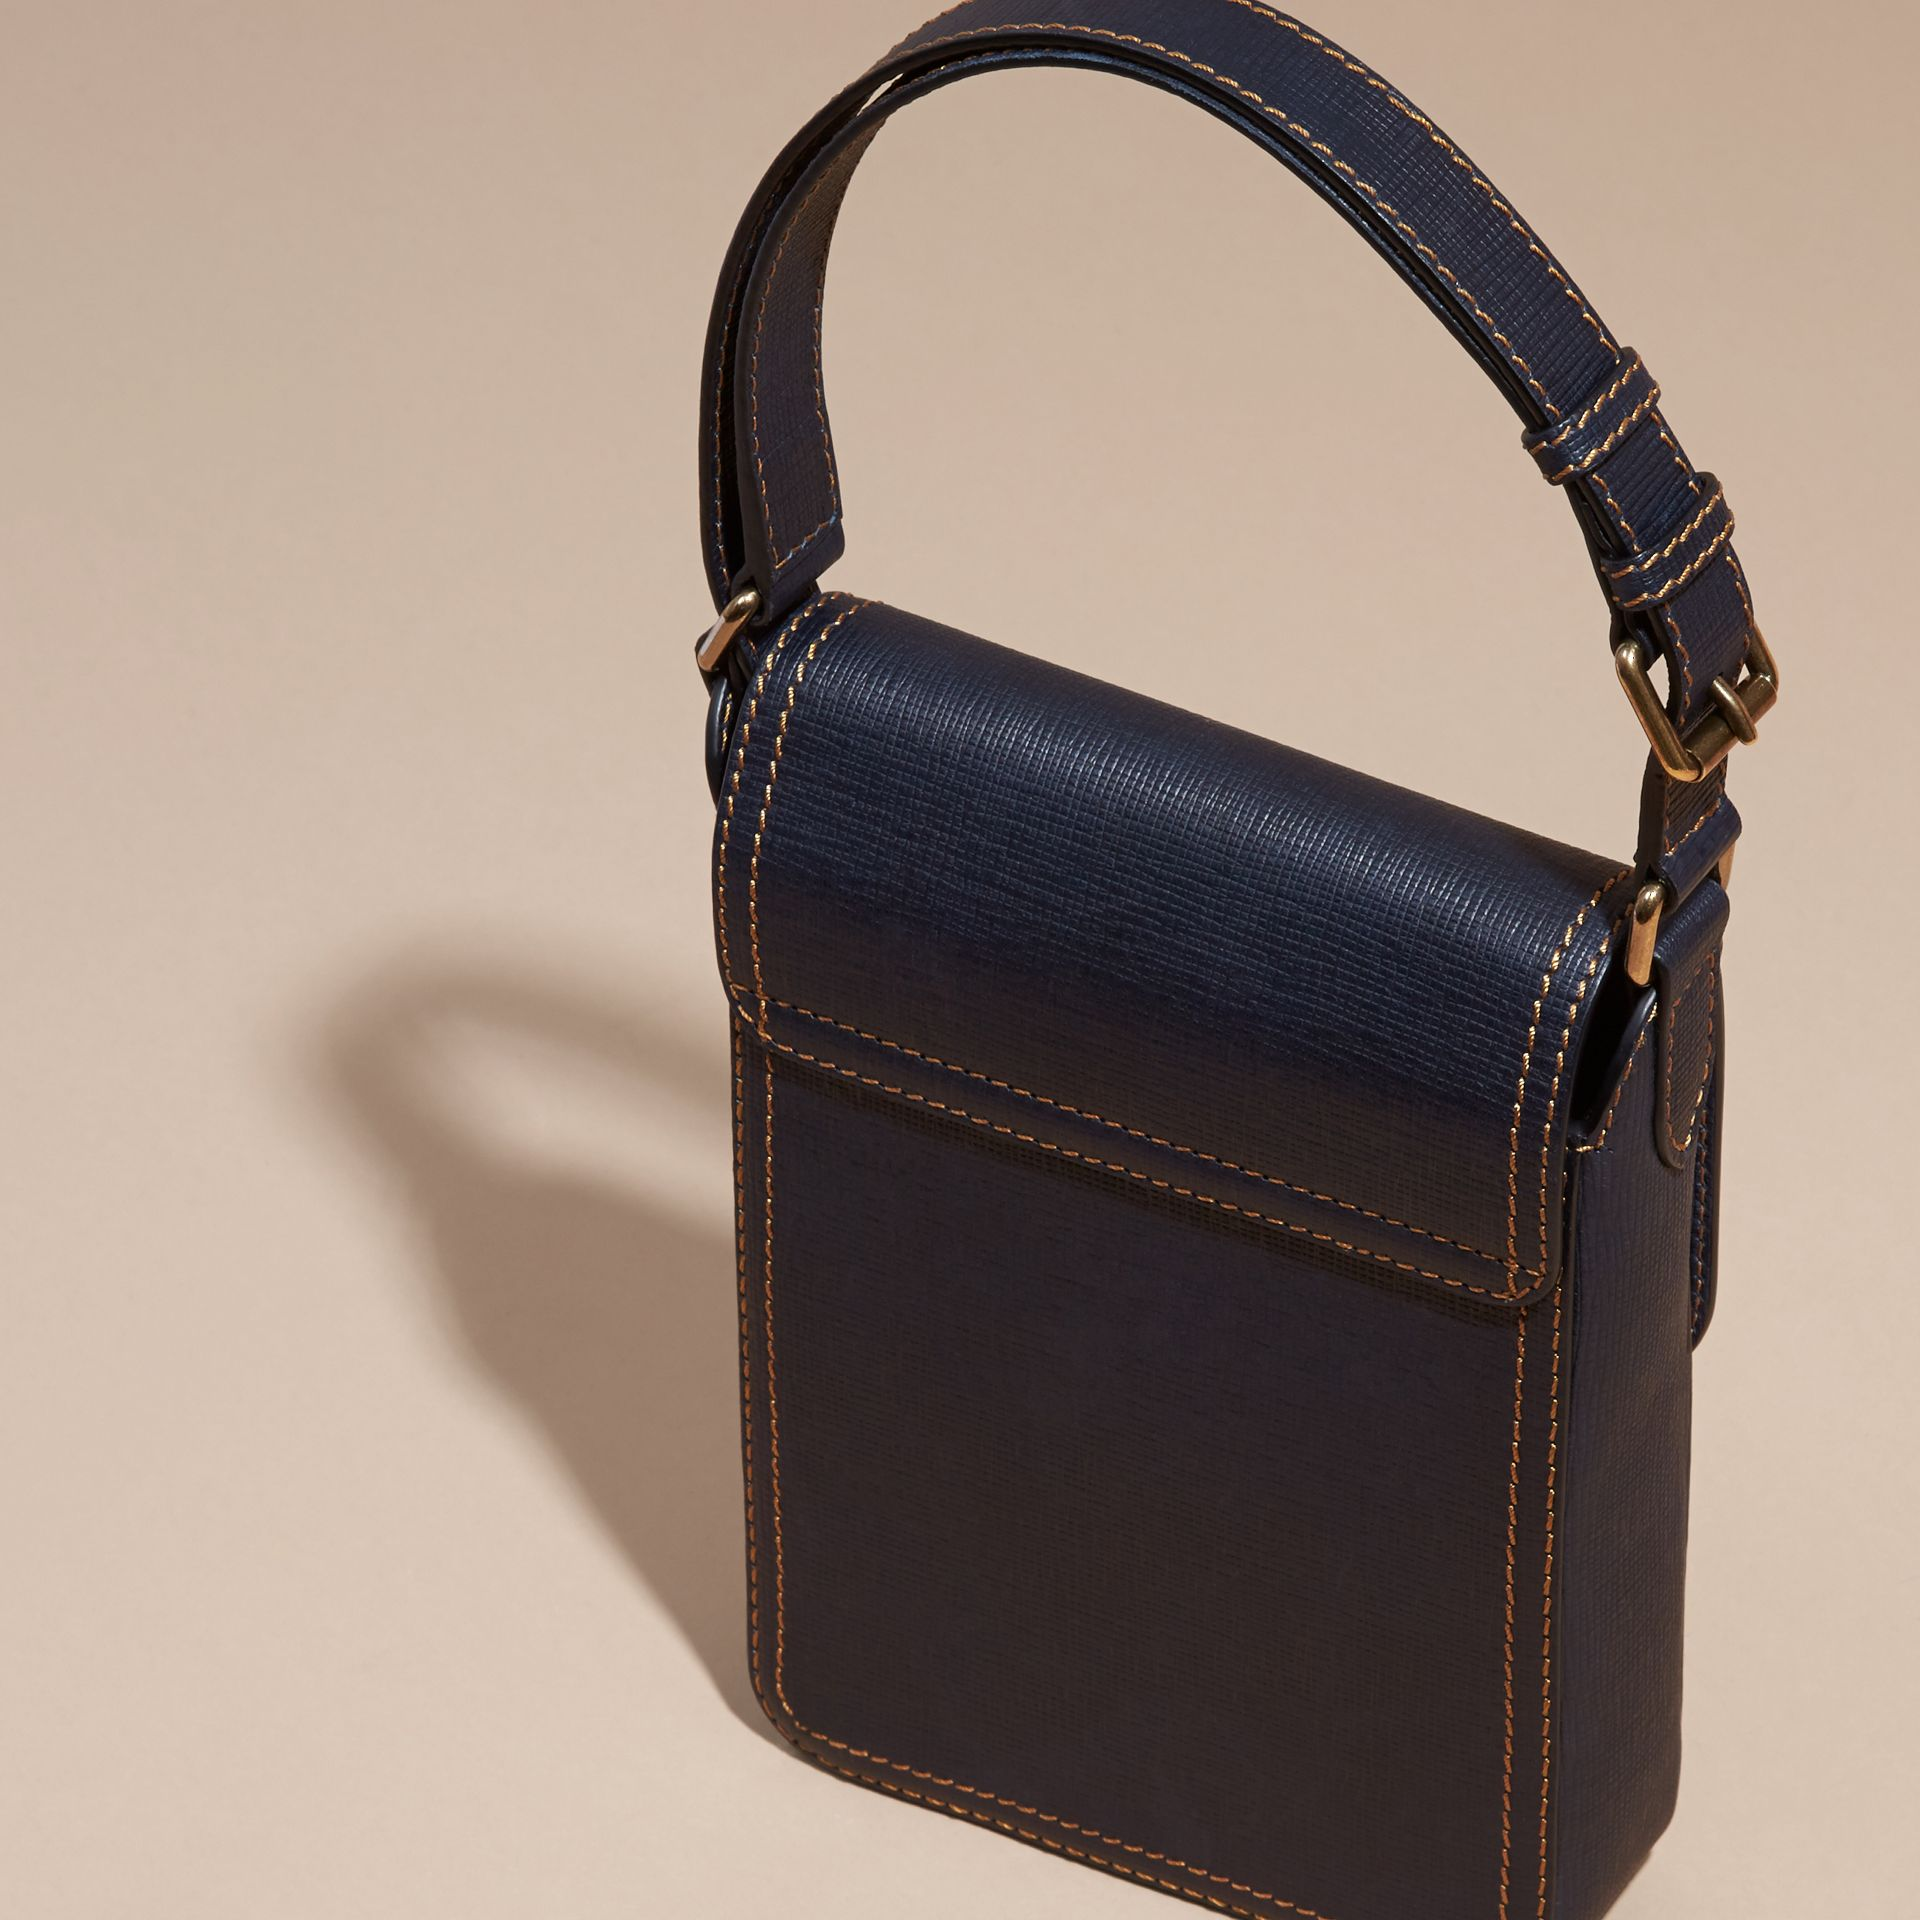 Dark navy The Small Satchel in Textured Leather - gallery image 4